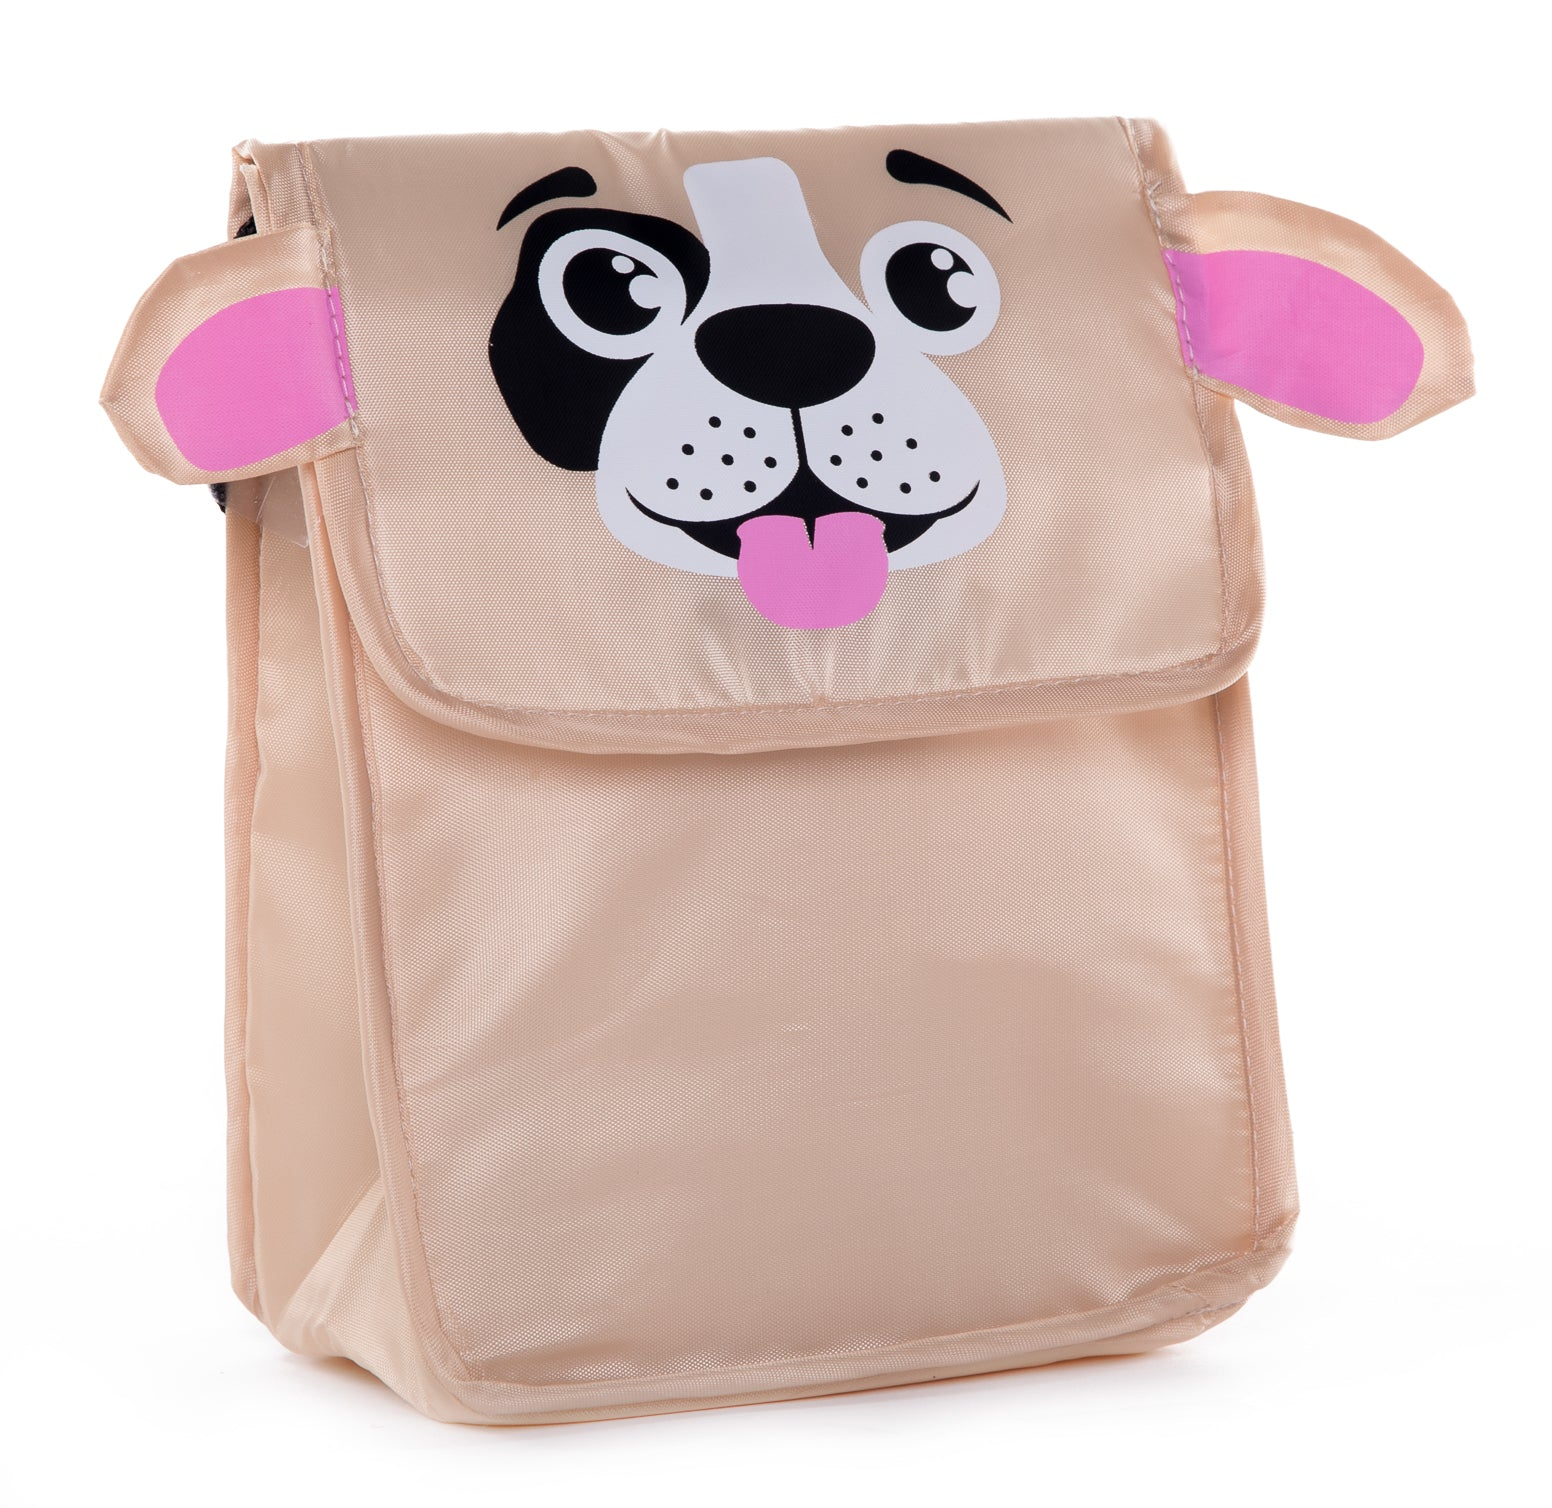 Accessory - Fun Animal Snack Bag For Kids | Lightweight And Insulated Lunch Bag With Strap